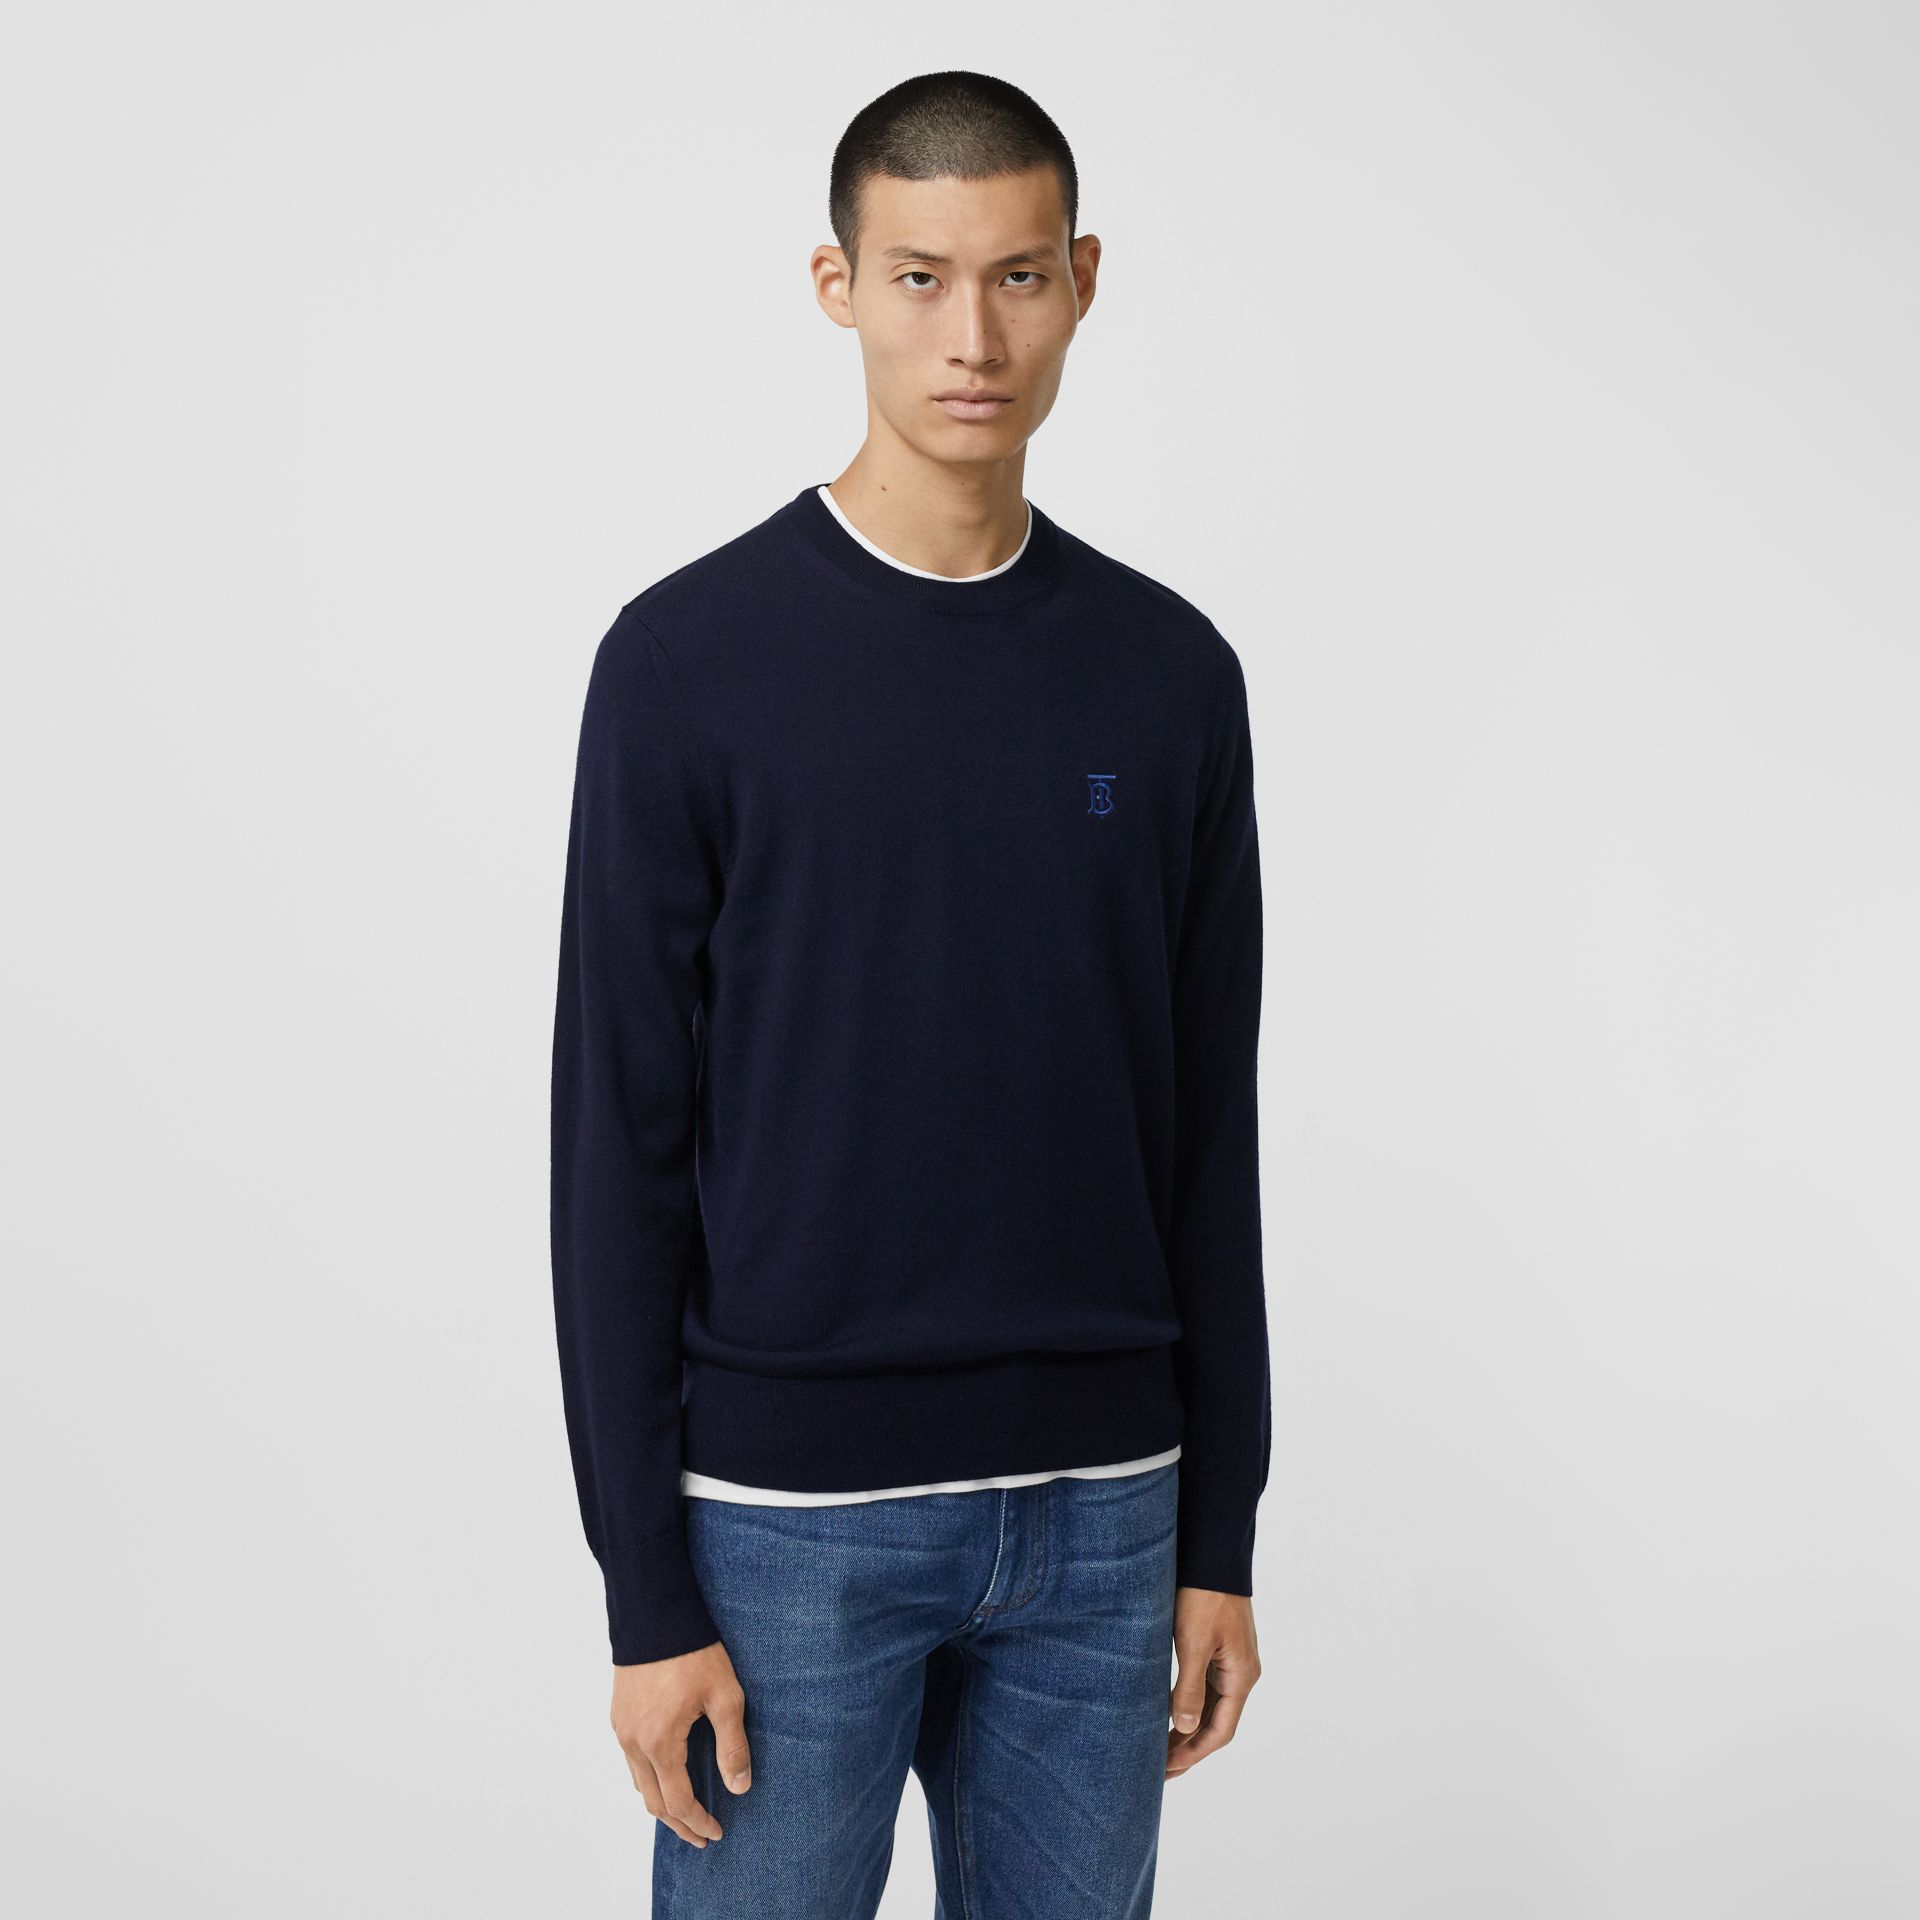 Monogram Motif Merino Wool Sweater in Navy - Men | Burberry - gallery image 4